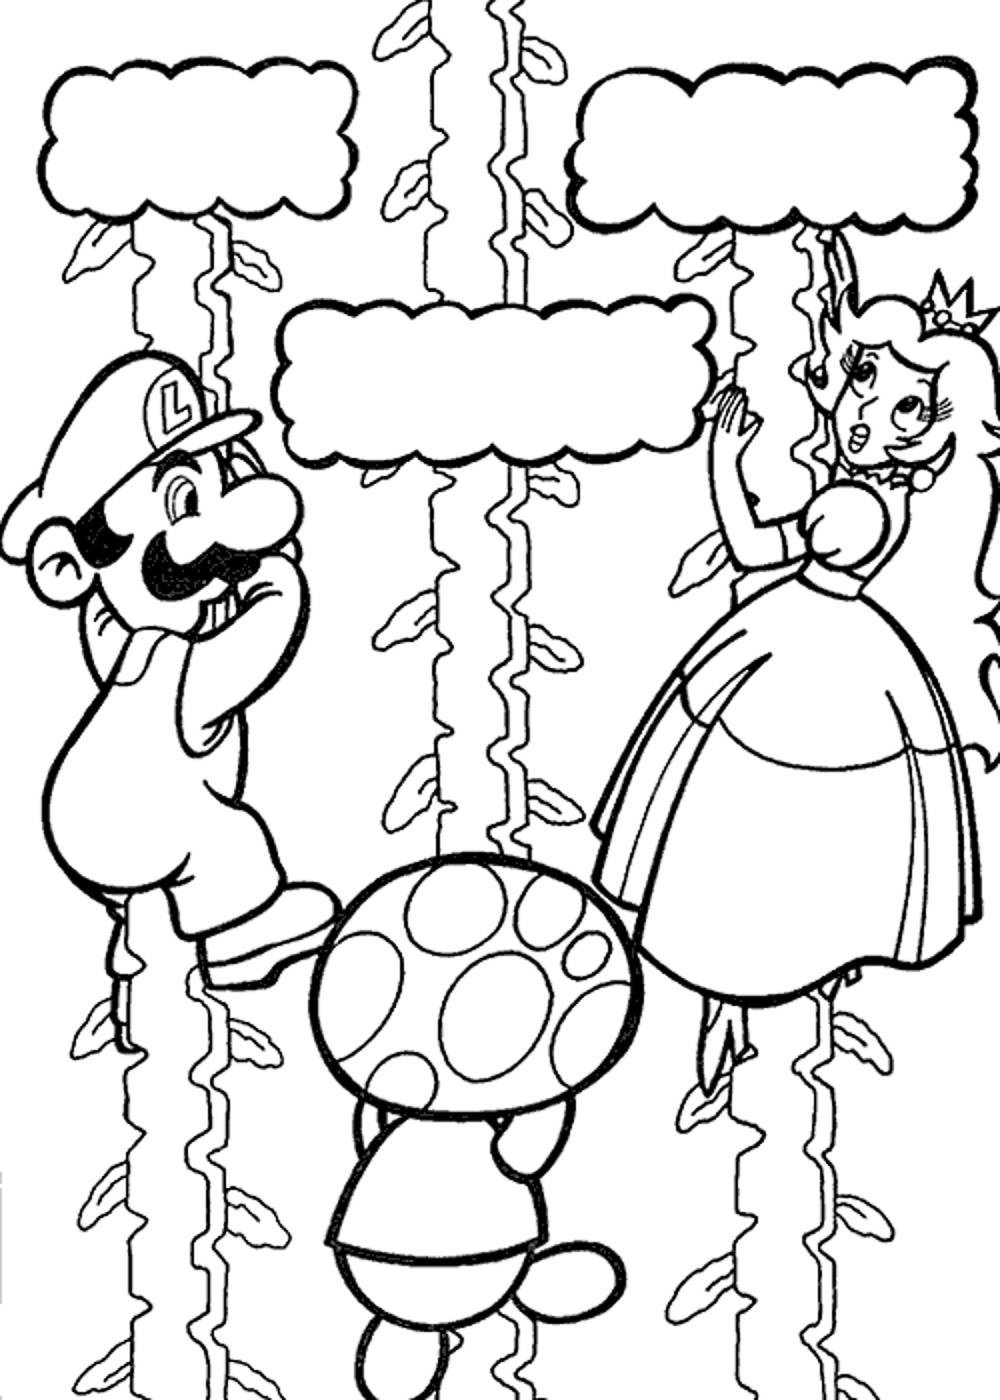 Print & Download Mario Coloring Pages themes Gallery Of Super Mario Bros Coloring Pages to Print